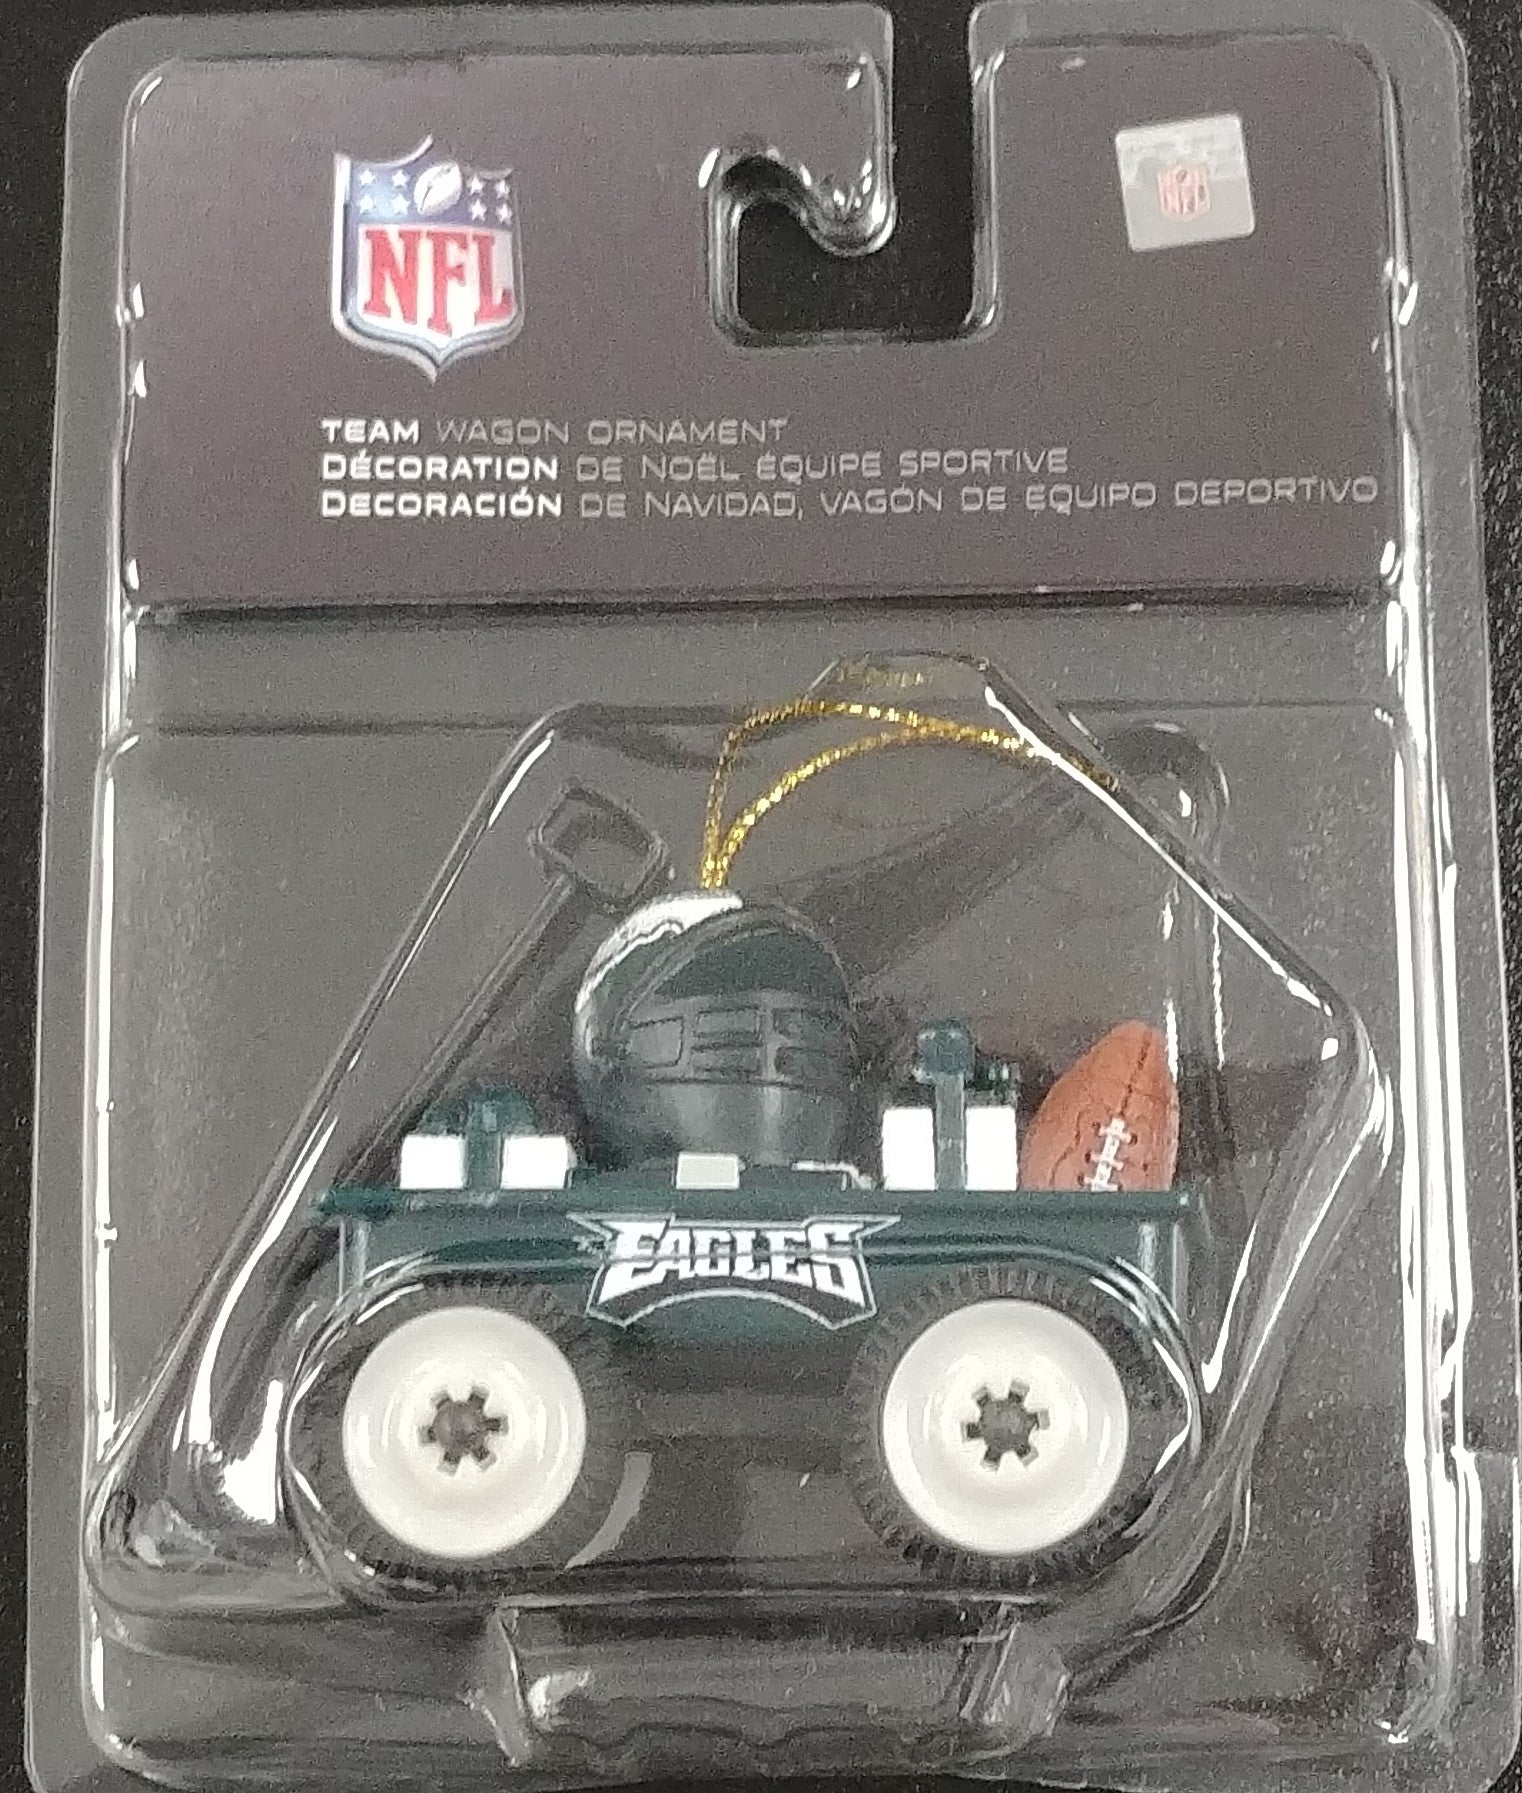 Philadelphia Eagles Wagon Ornament